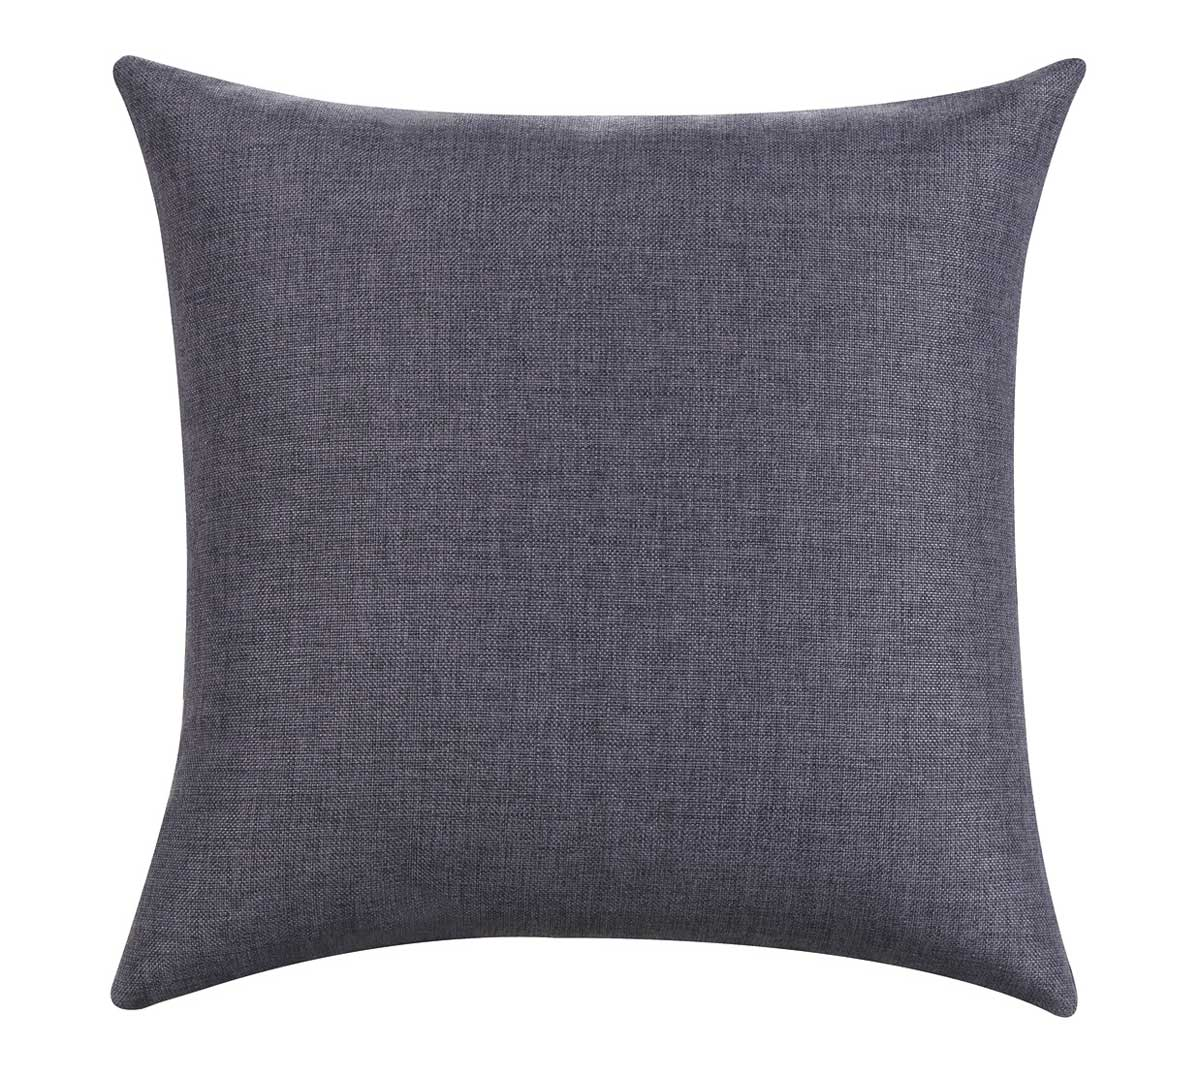 905341 Solid Grey Pillow